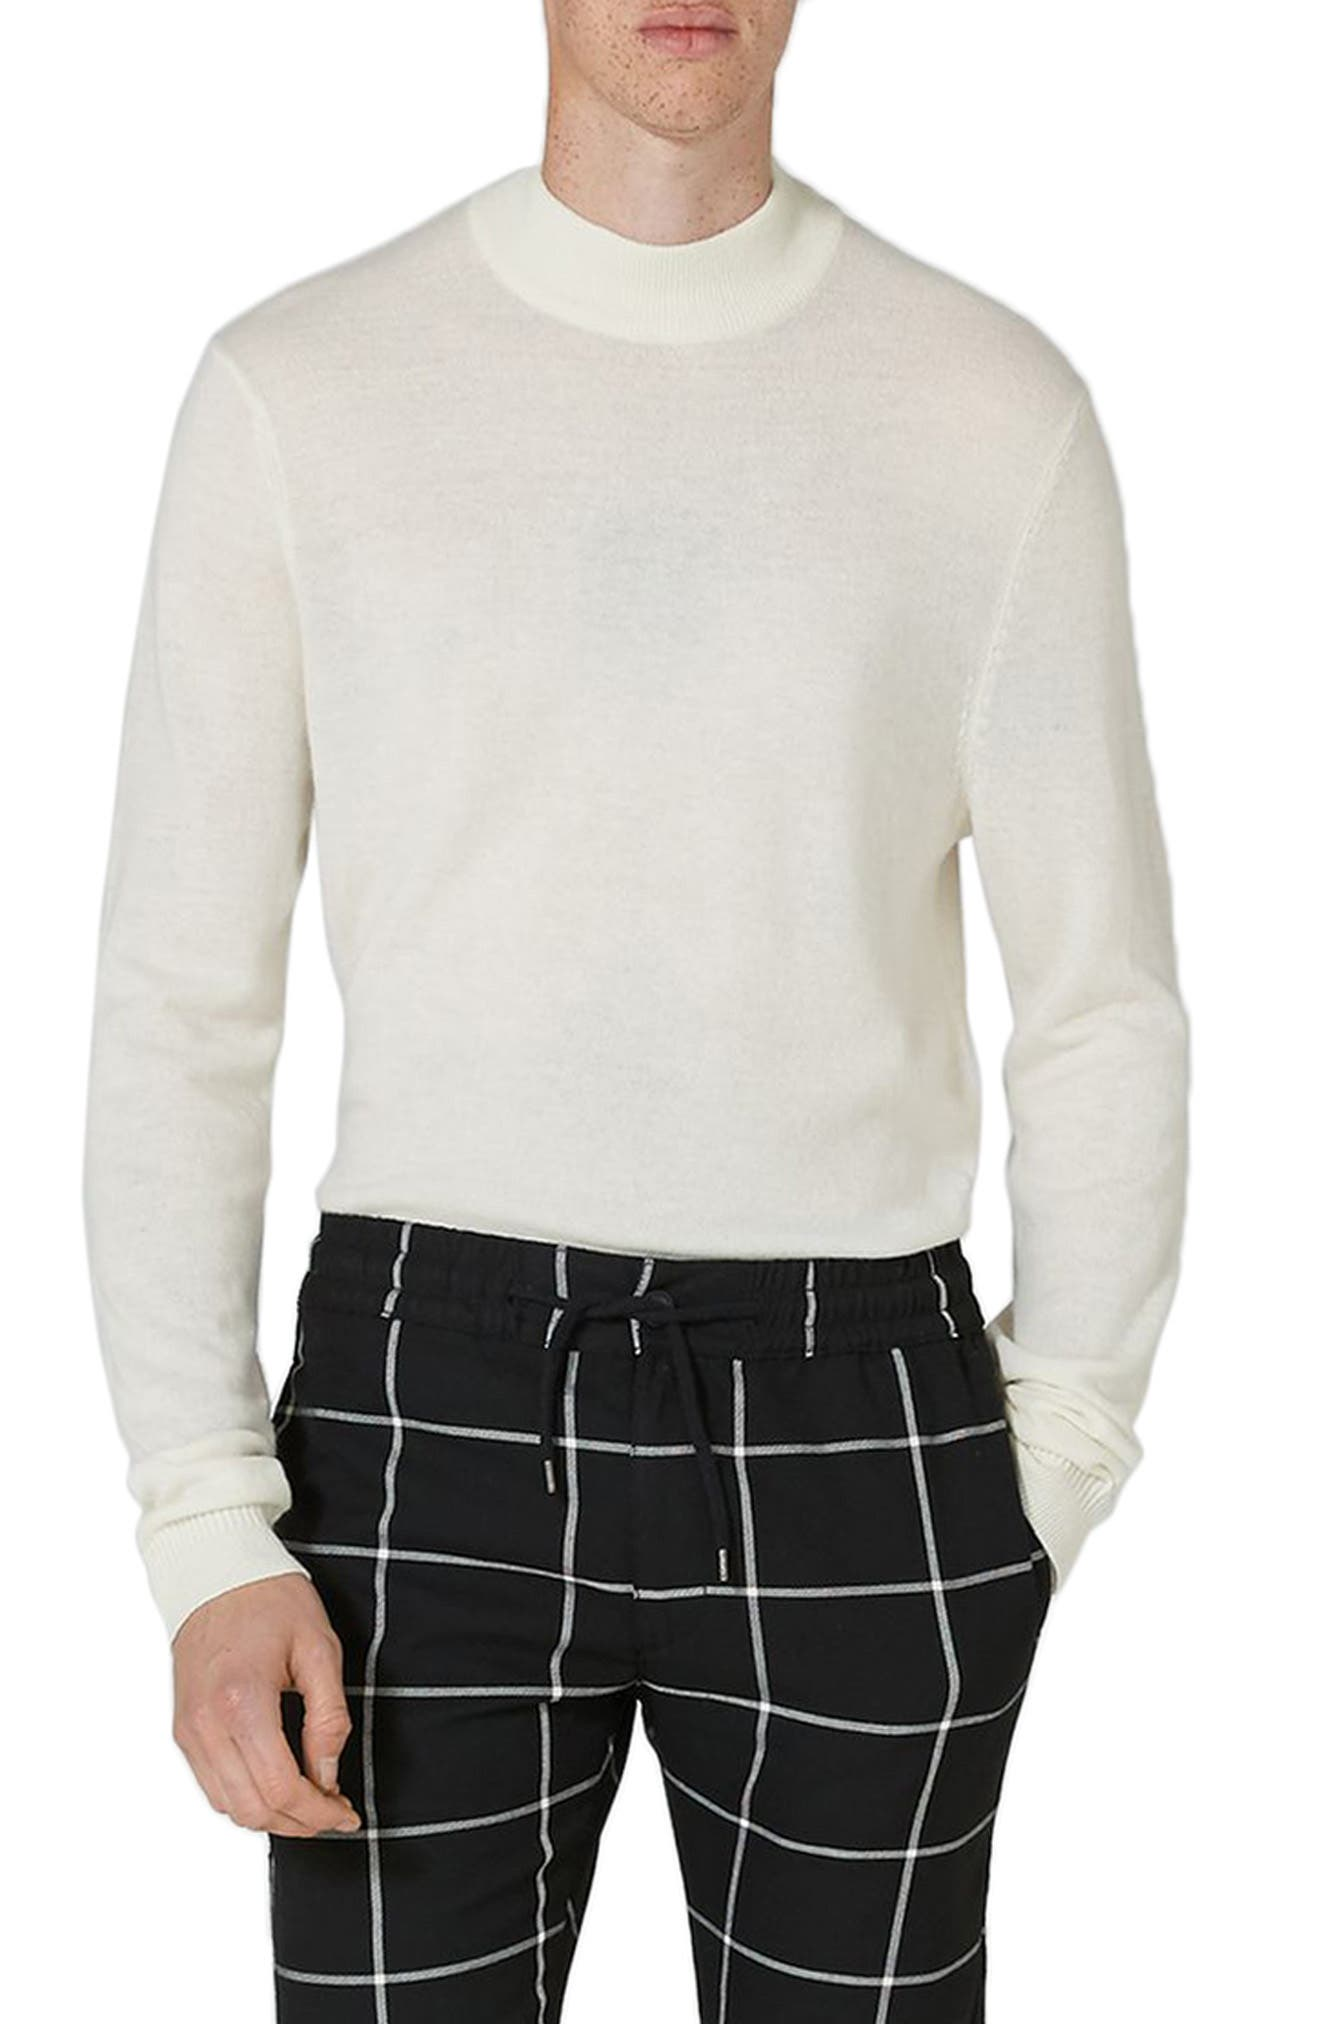 Topman Slim Fit Turtleneck Sweater